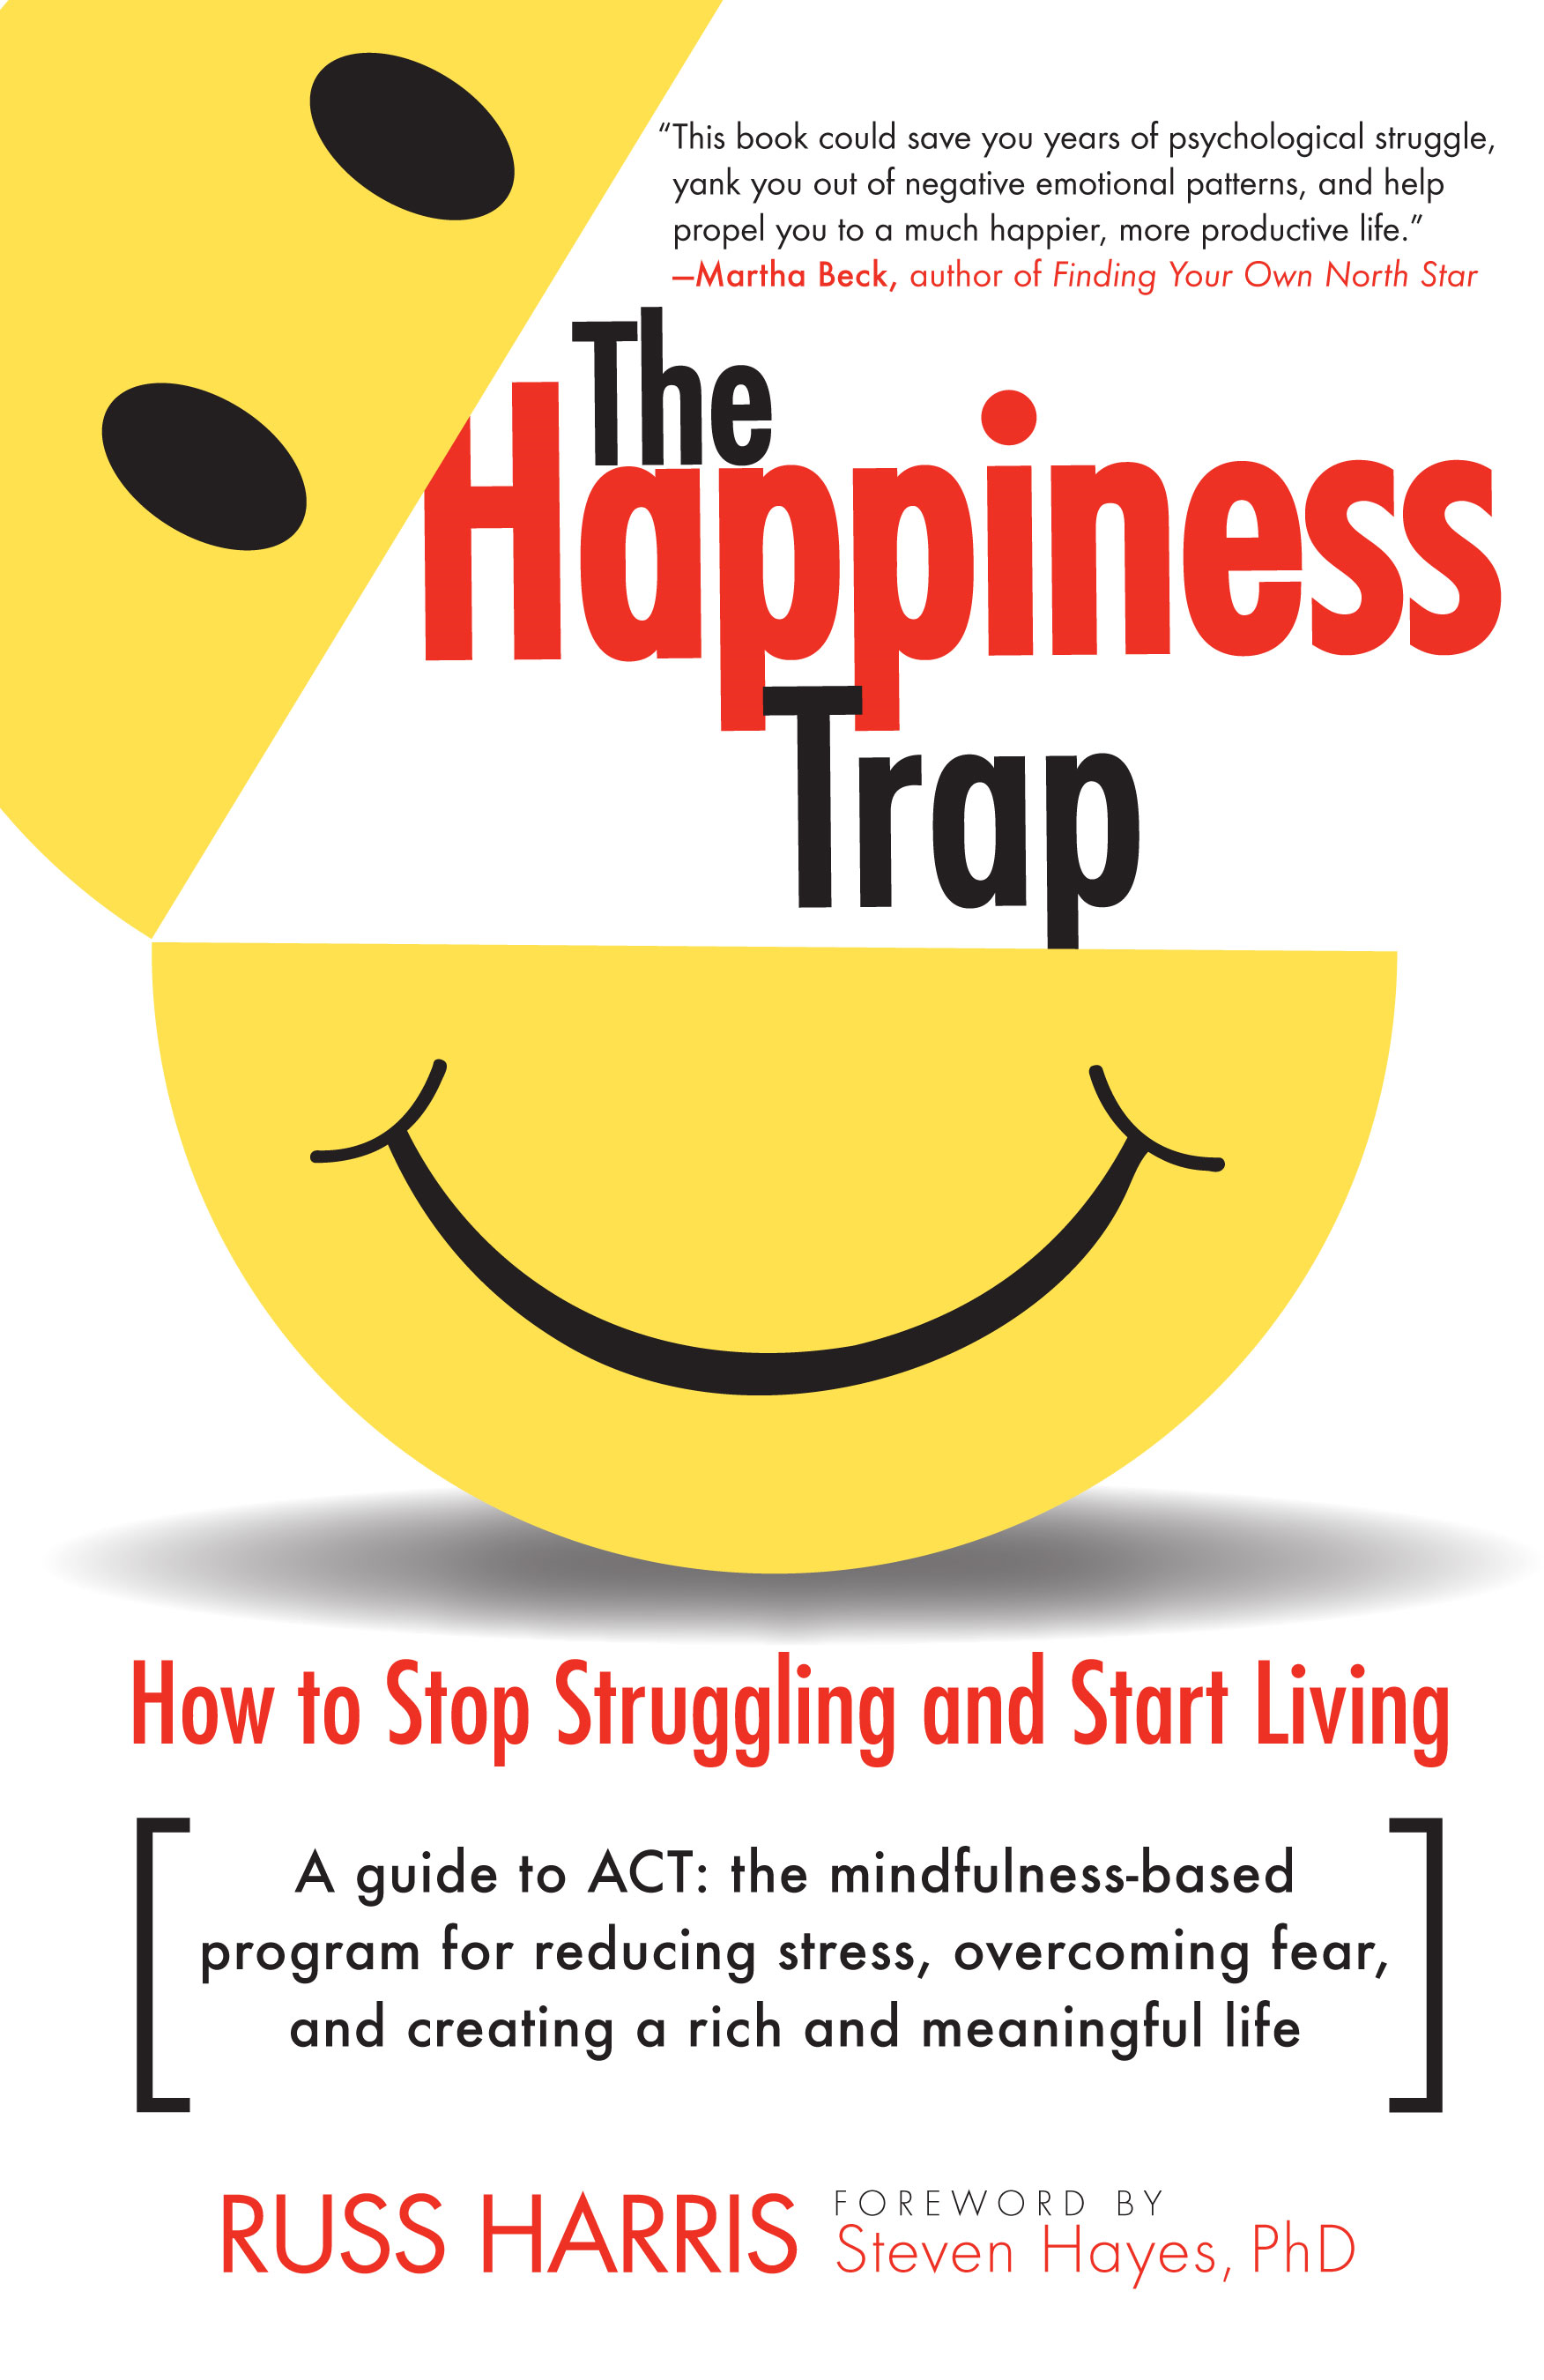 The Happiness Trap: How to Stop Struggling and Start Living